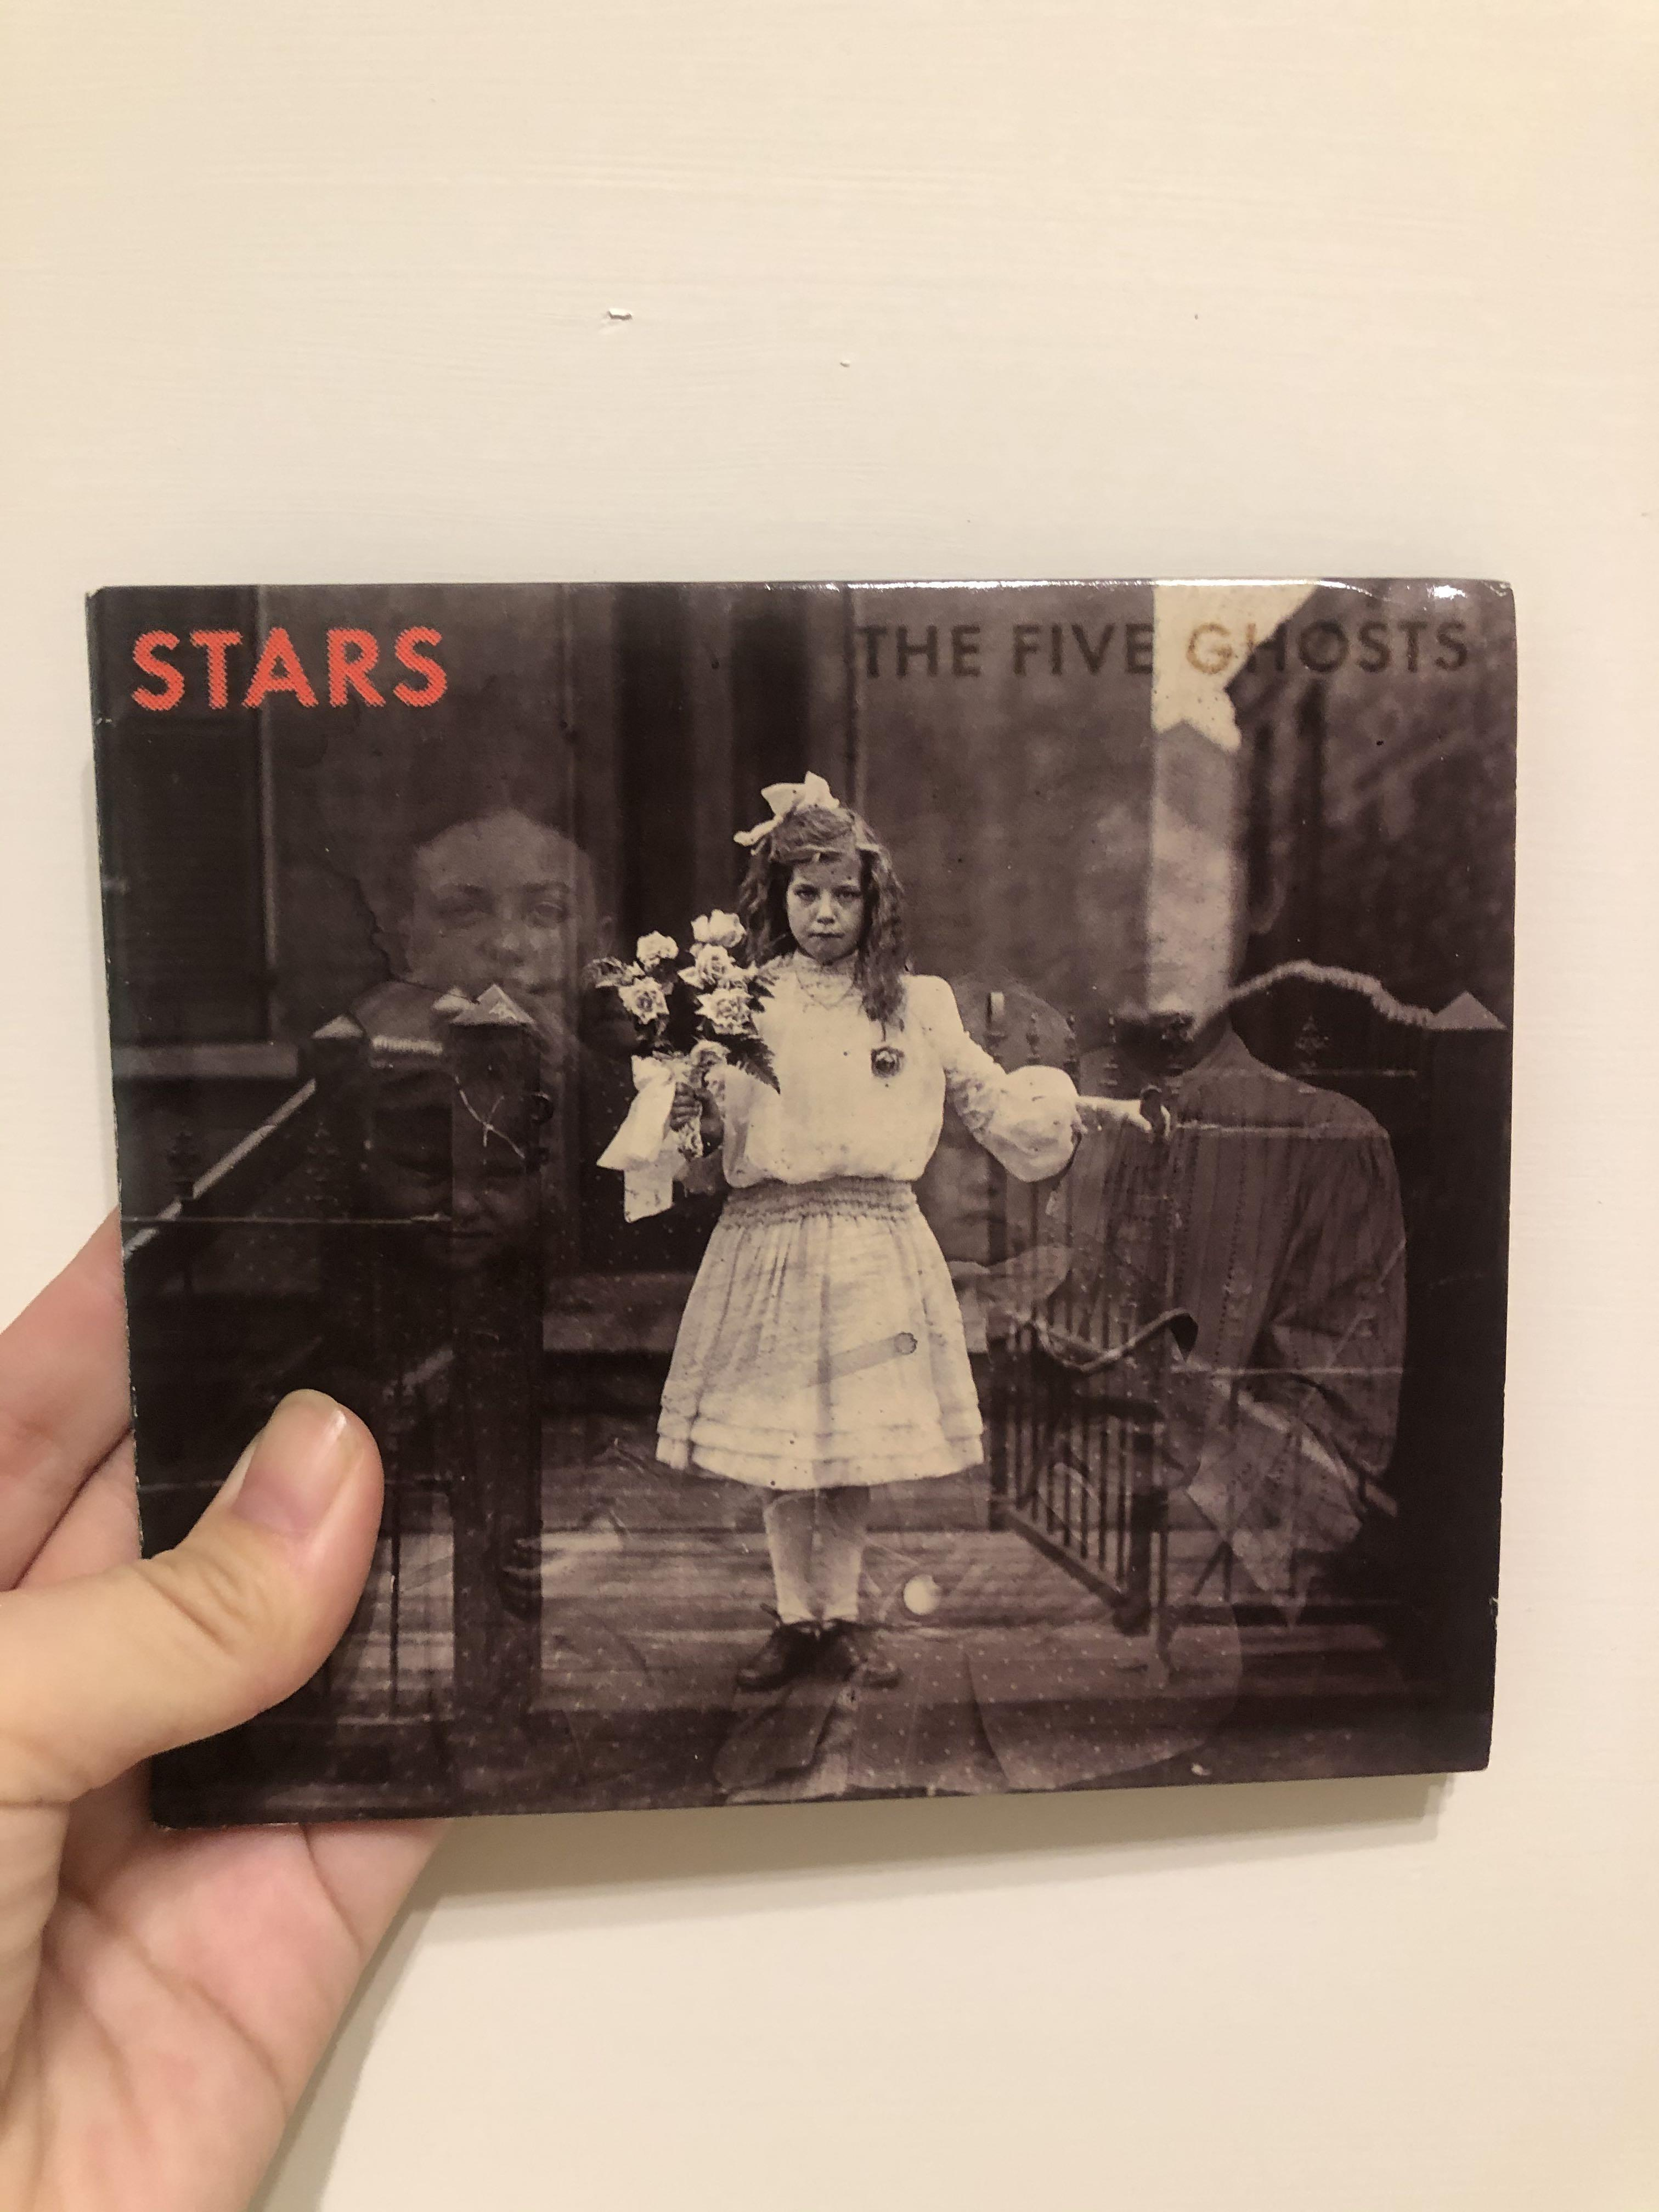 STARS-THE FIVE GHOSTS